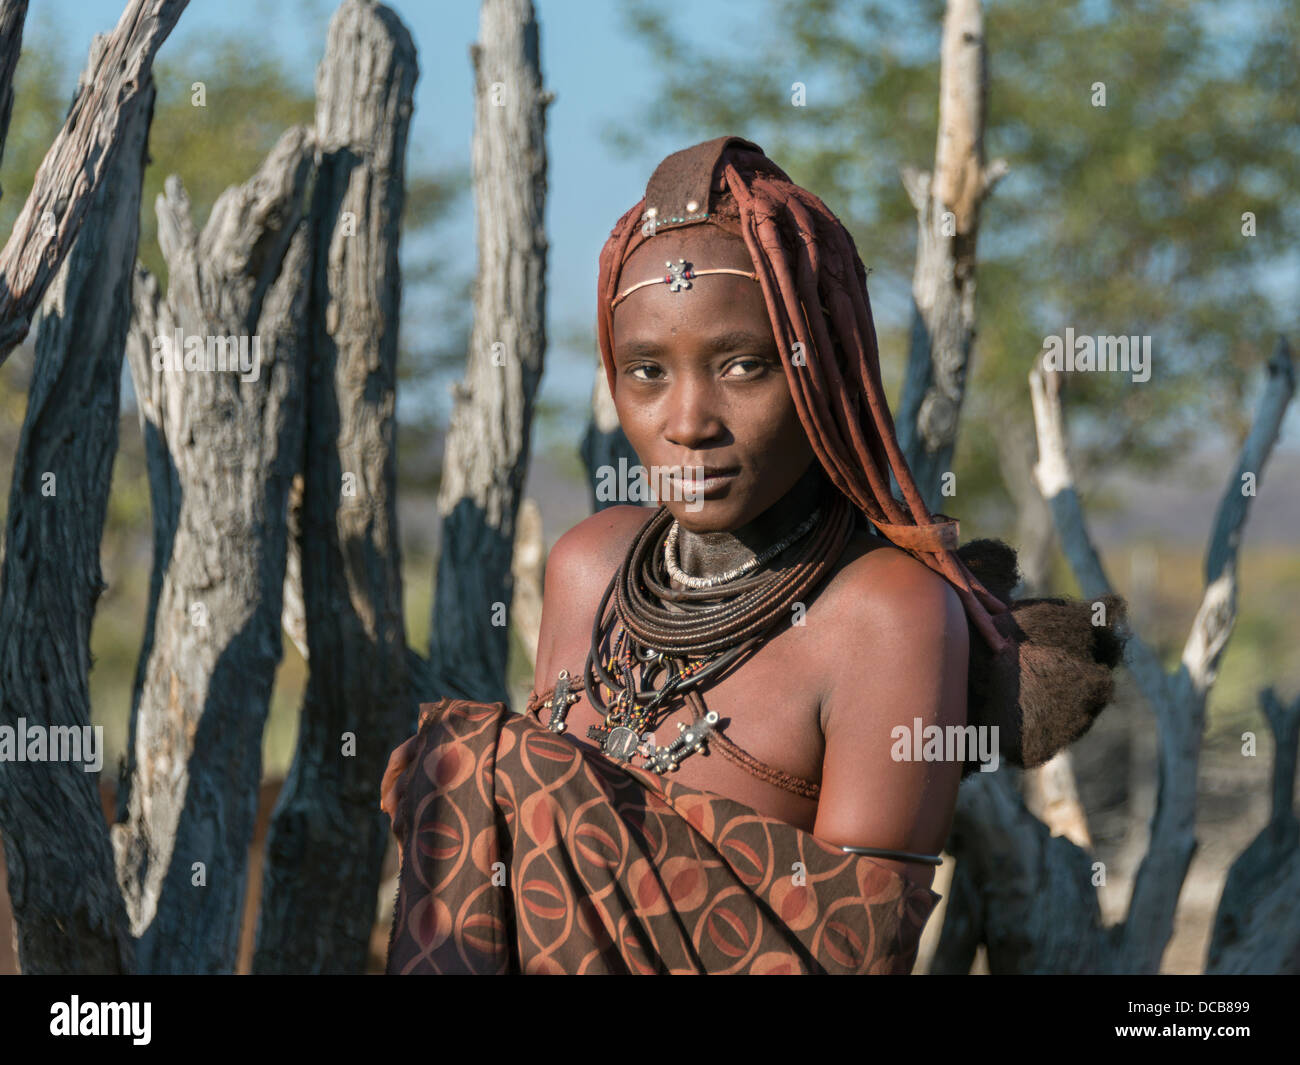 Portrait of a Himba woman - Stock Image